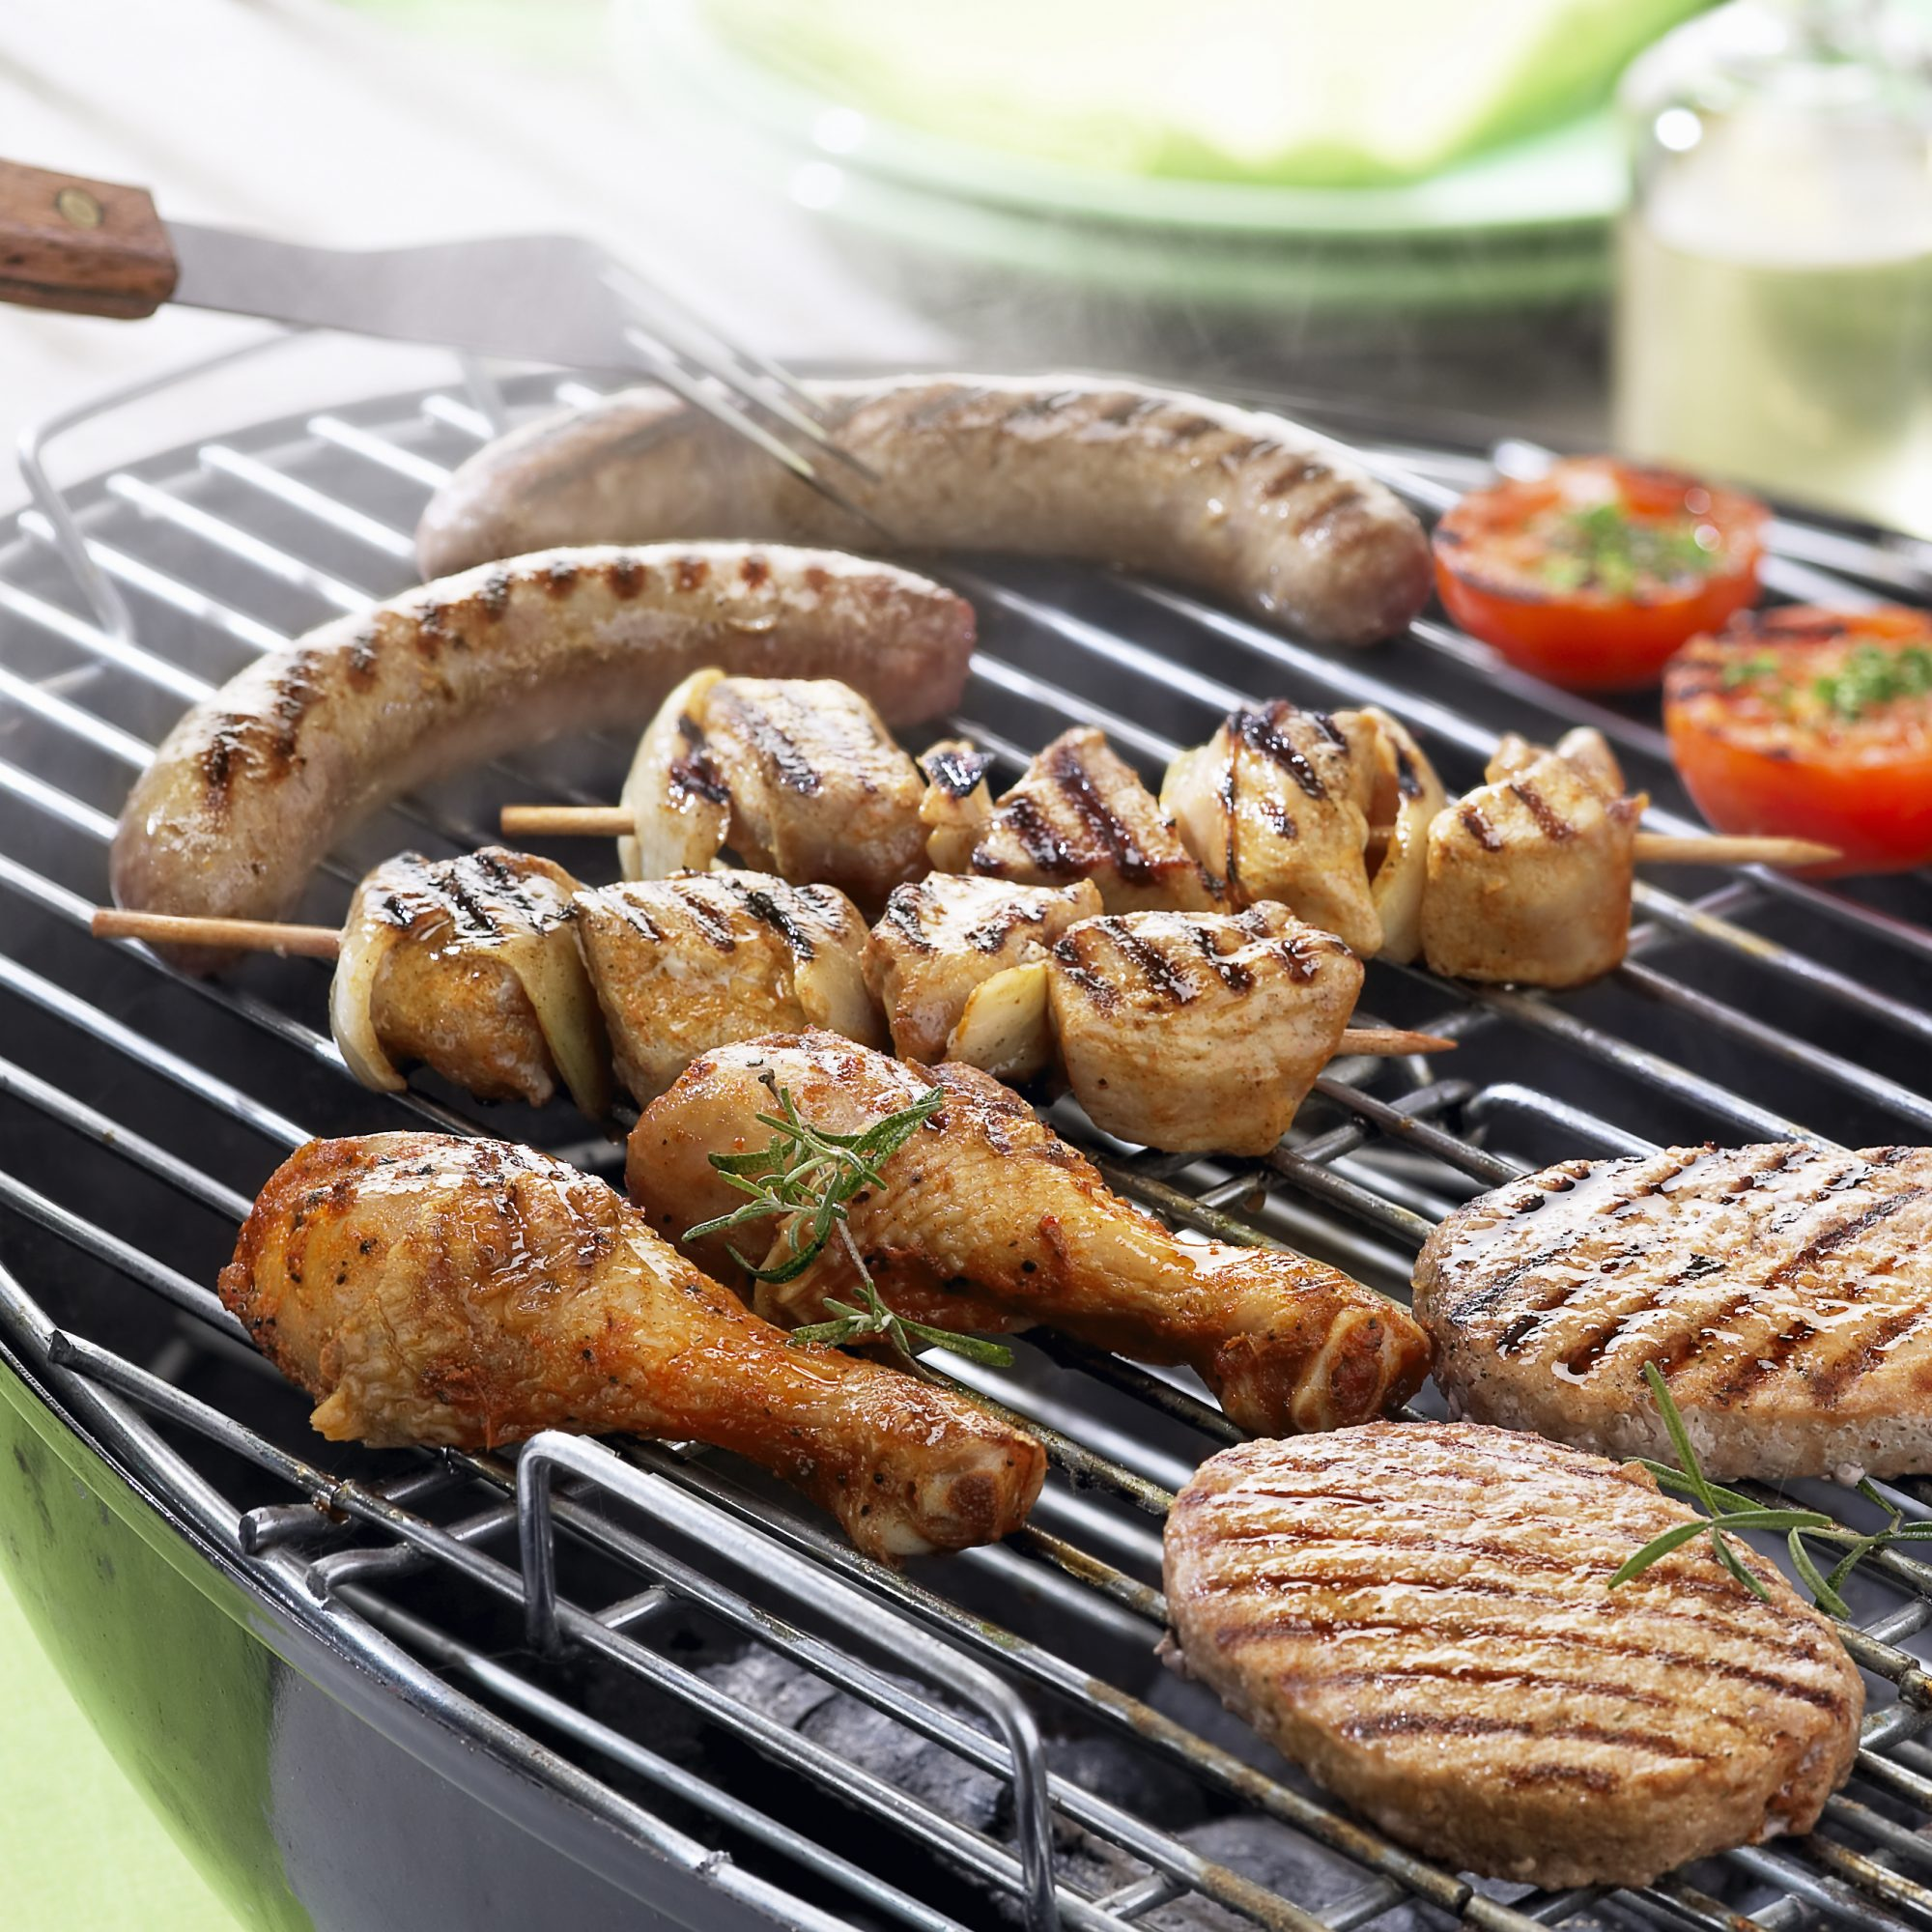 Cooking on Charcoal Grill